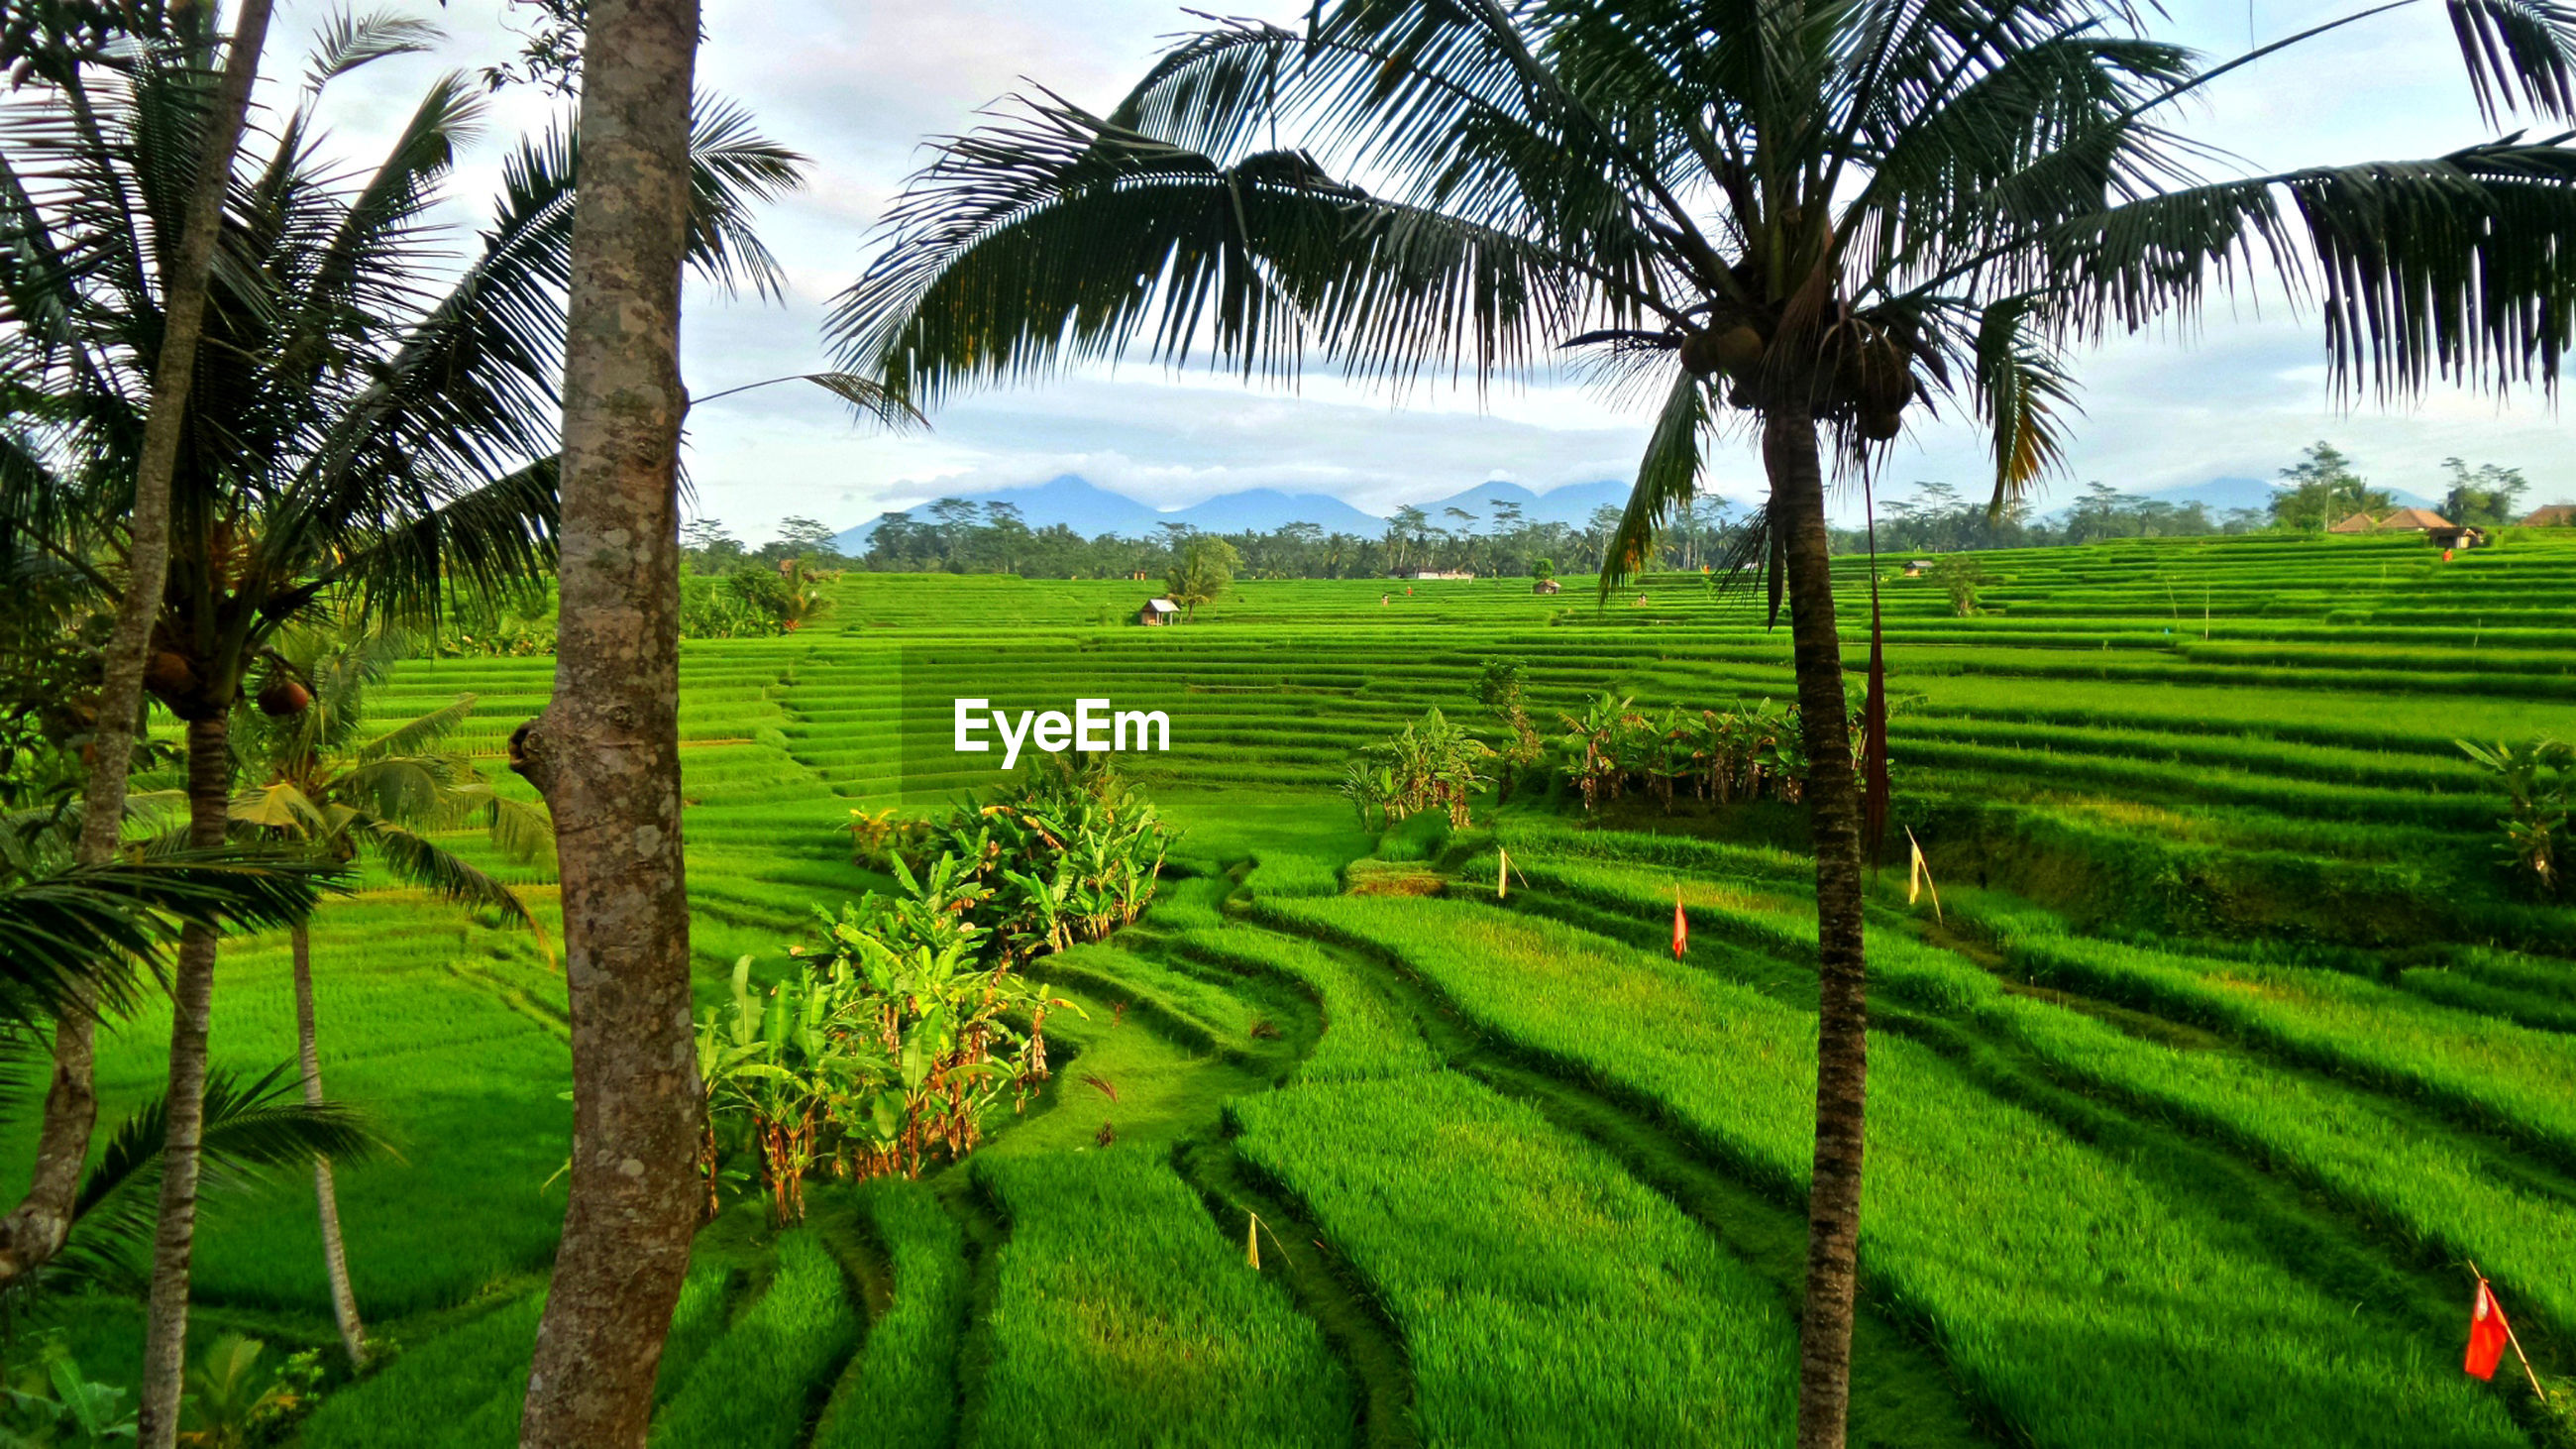 SCENIC VIEW OF PALM TREES IN FARM